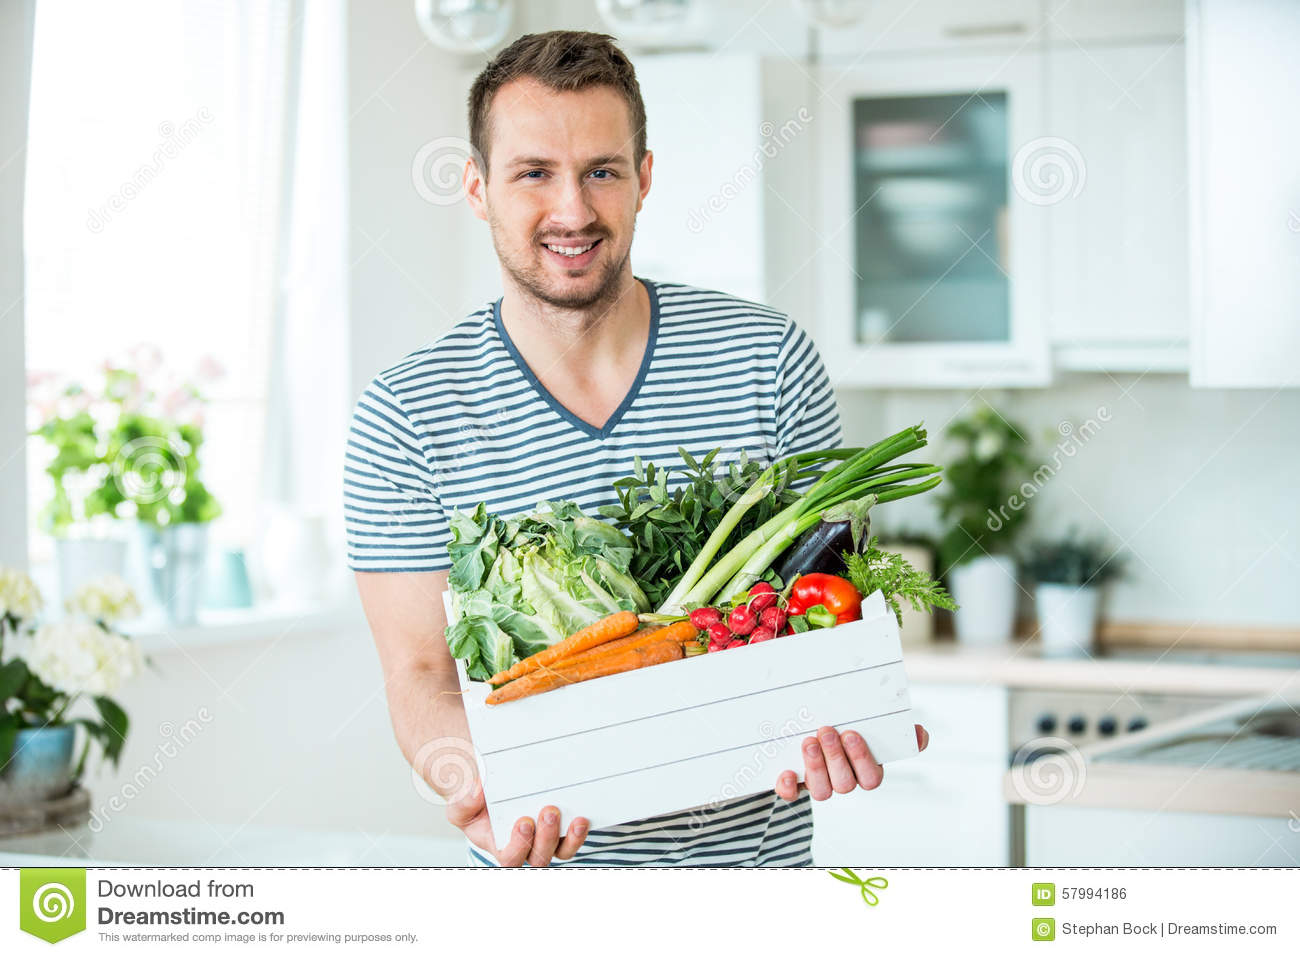 Young Man With Vegetable Box In Kitchen Stock Photo - Image of ...